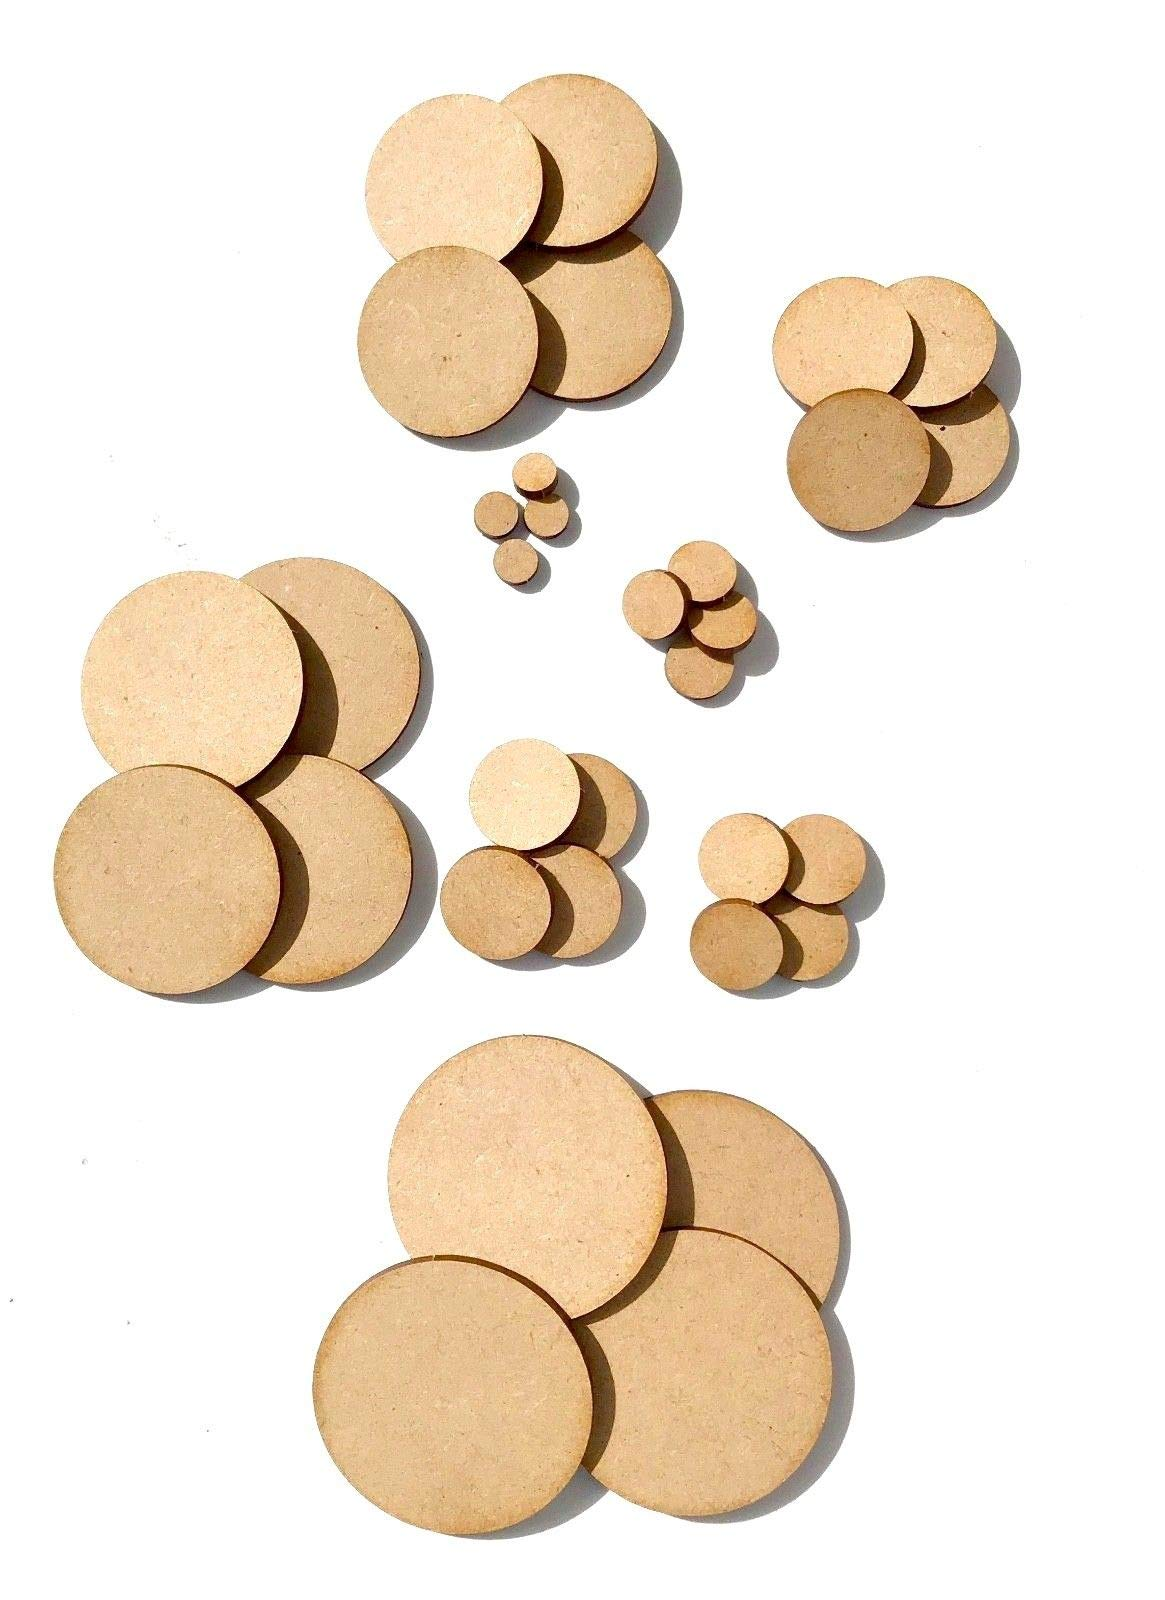 6pc MDF 0.5 inch Thick Light Weight Round Medium Density Fiberboard 36''. Click add to cart Now Buy it Today!